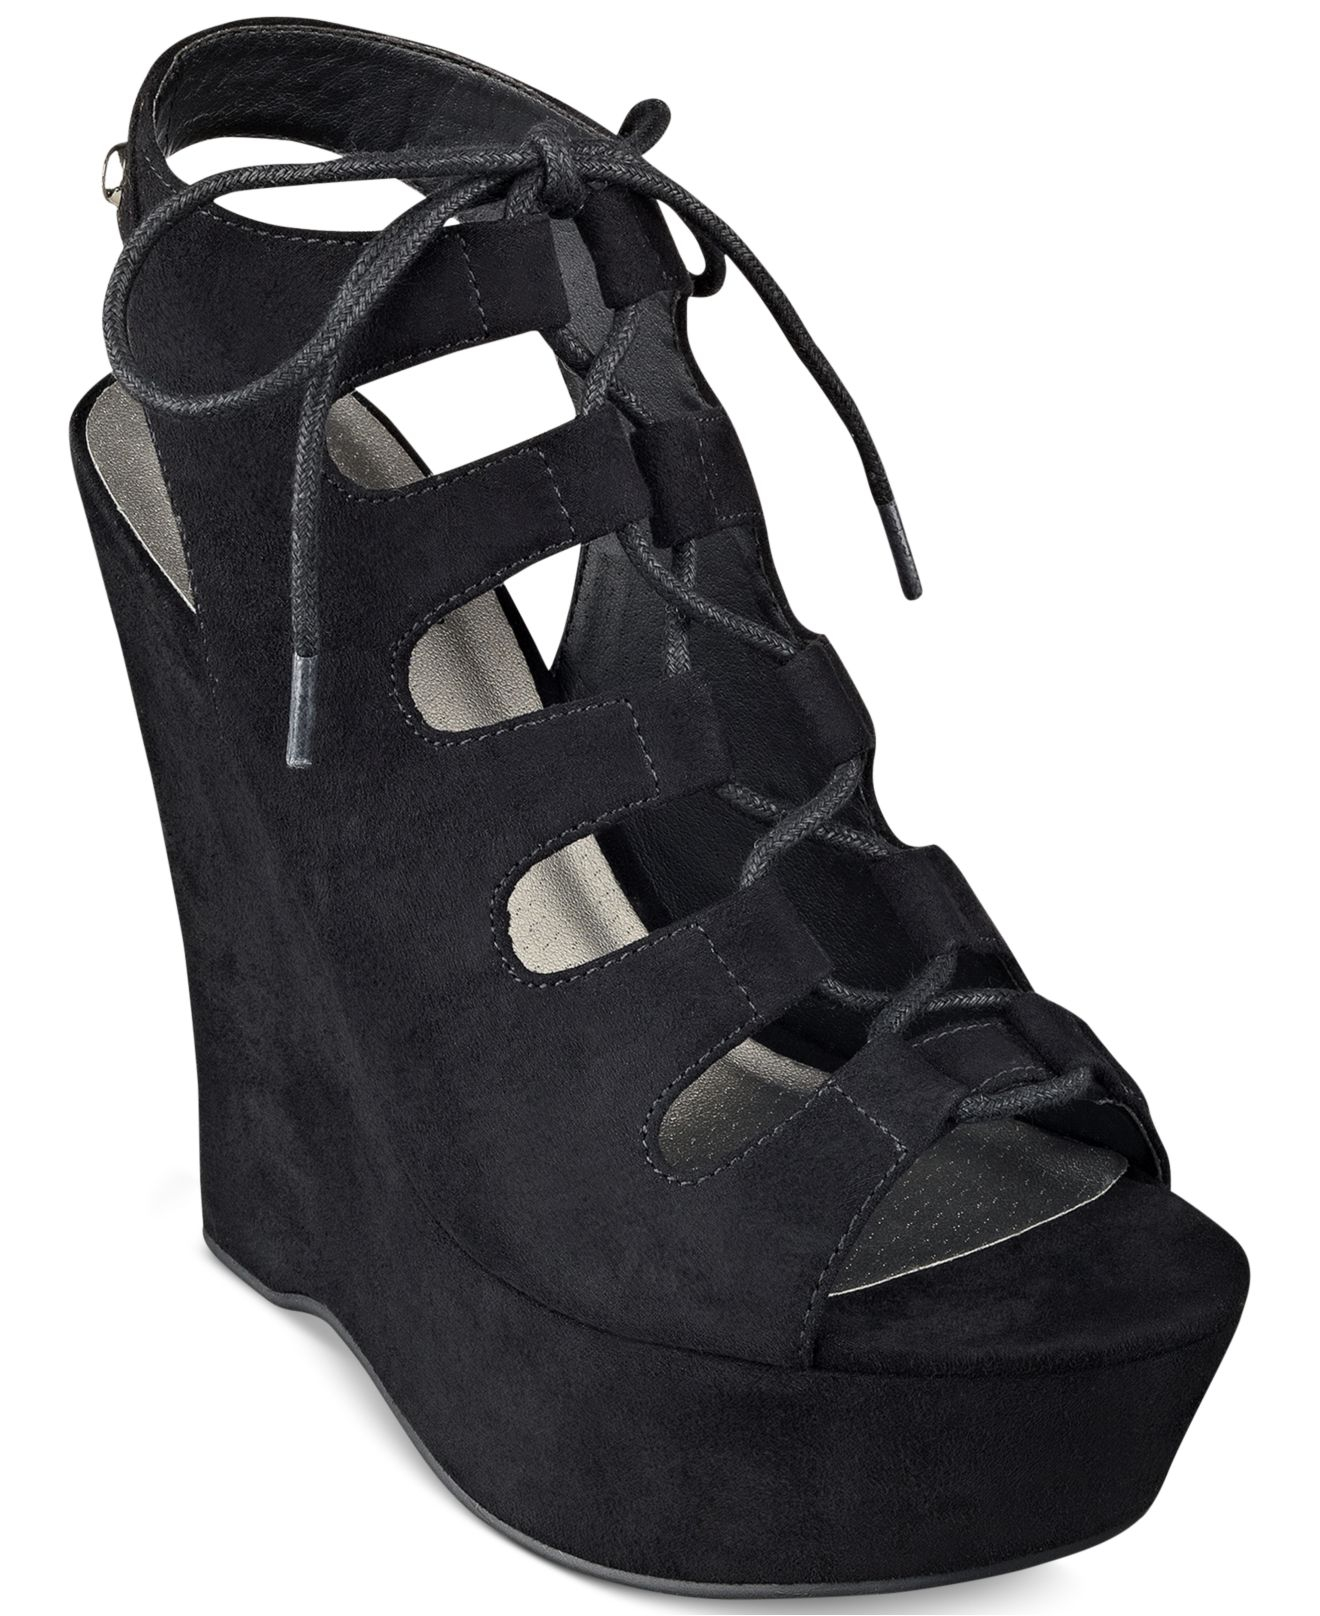 e0612805c193 Lyst - G by Guess Hexen Lace-up Platform Wedges in Black